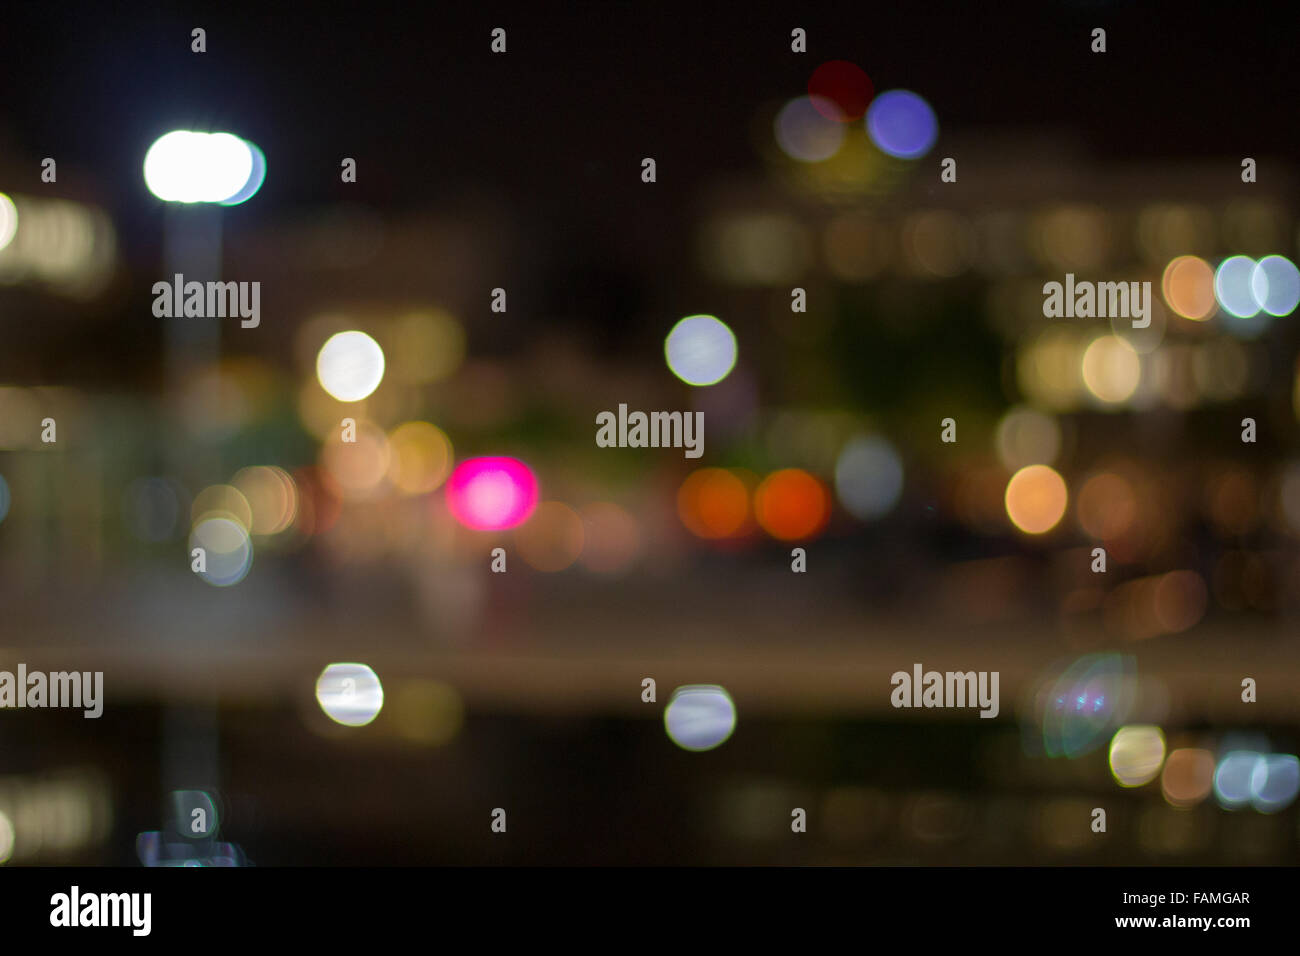 Artistic style - Defocused urban abstract texture ,bokeh of city lights in the background with blurring lights for - Stock Image